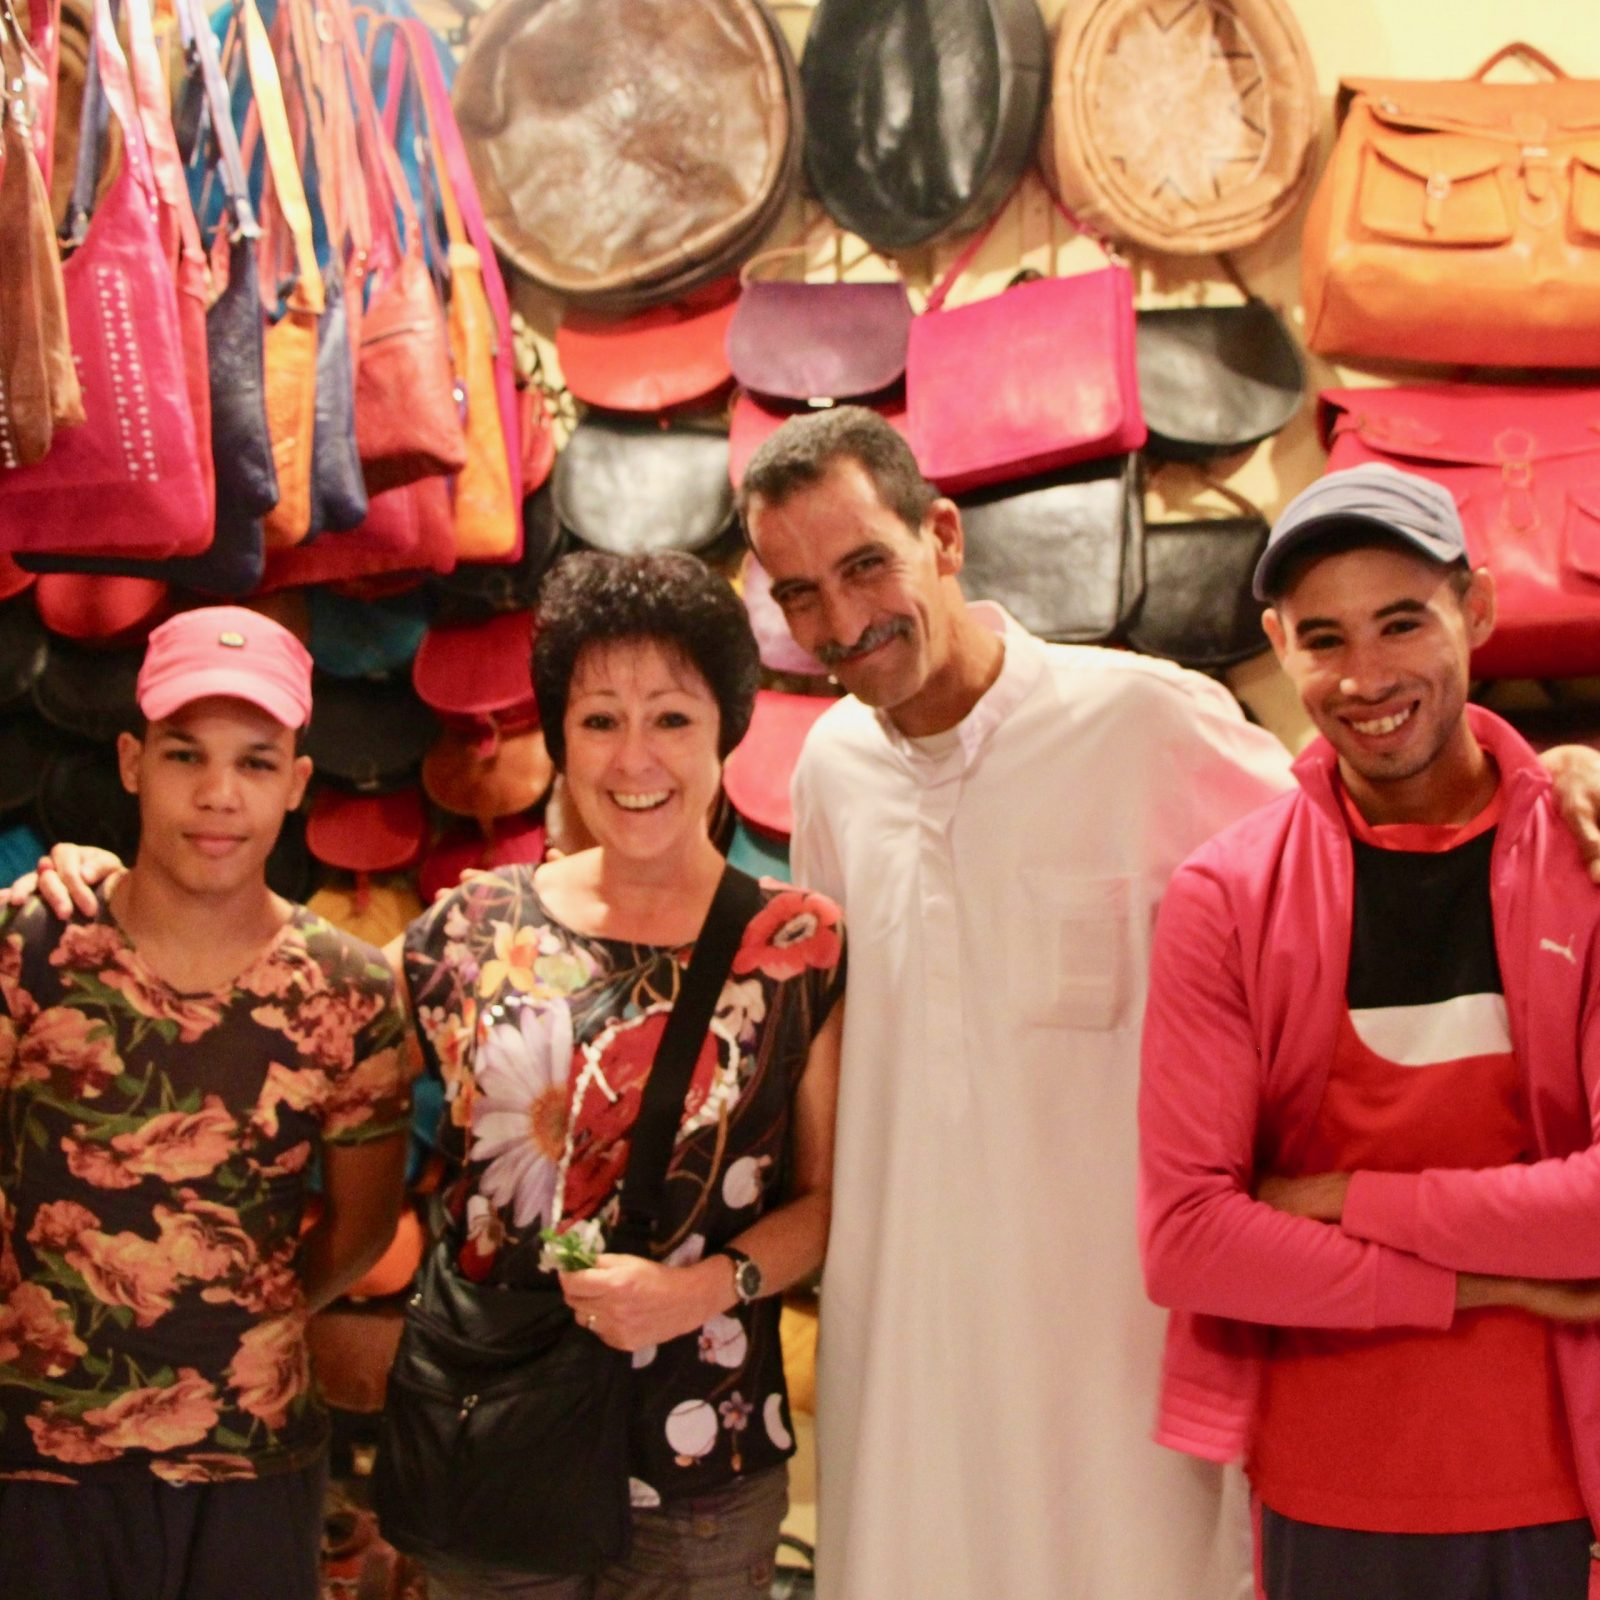 Friends in the Leather Store. Marrakesh, Morroco.